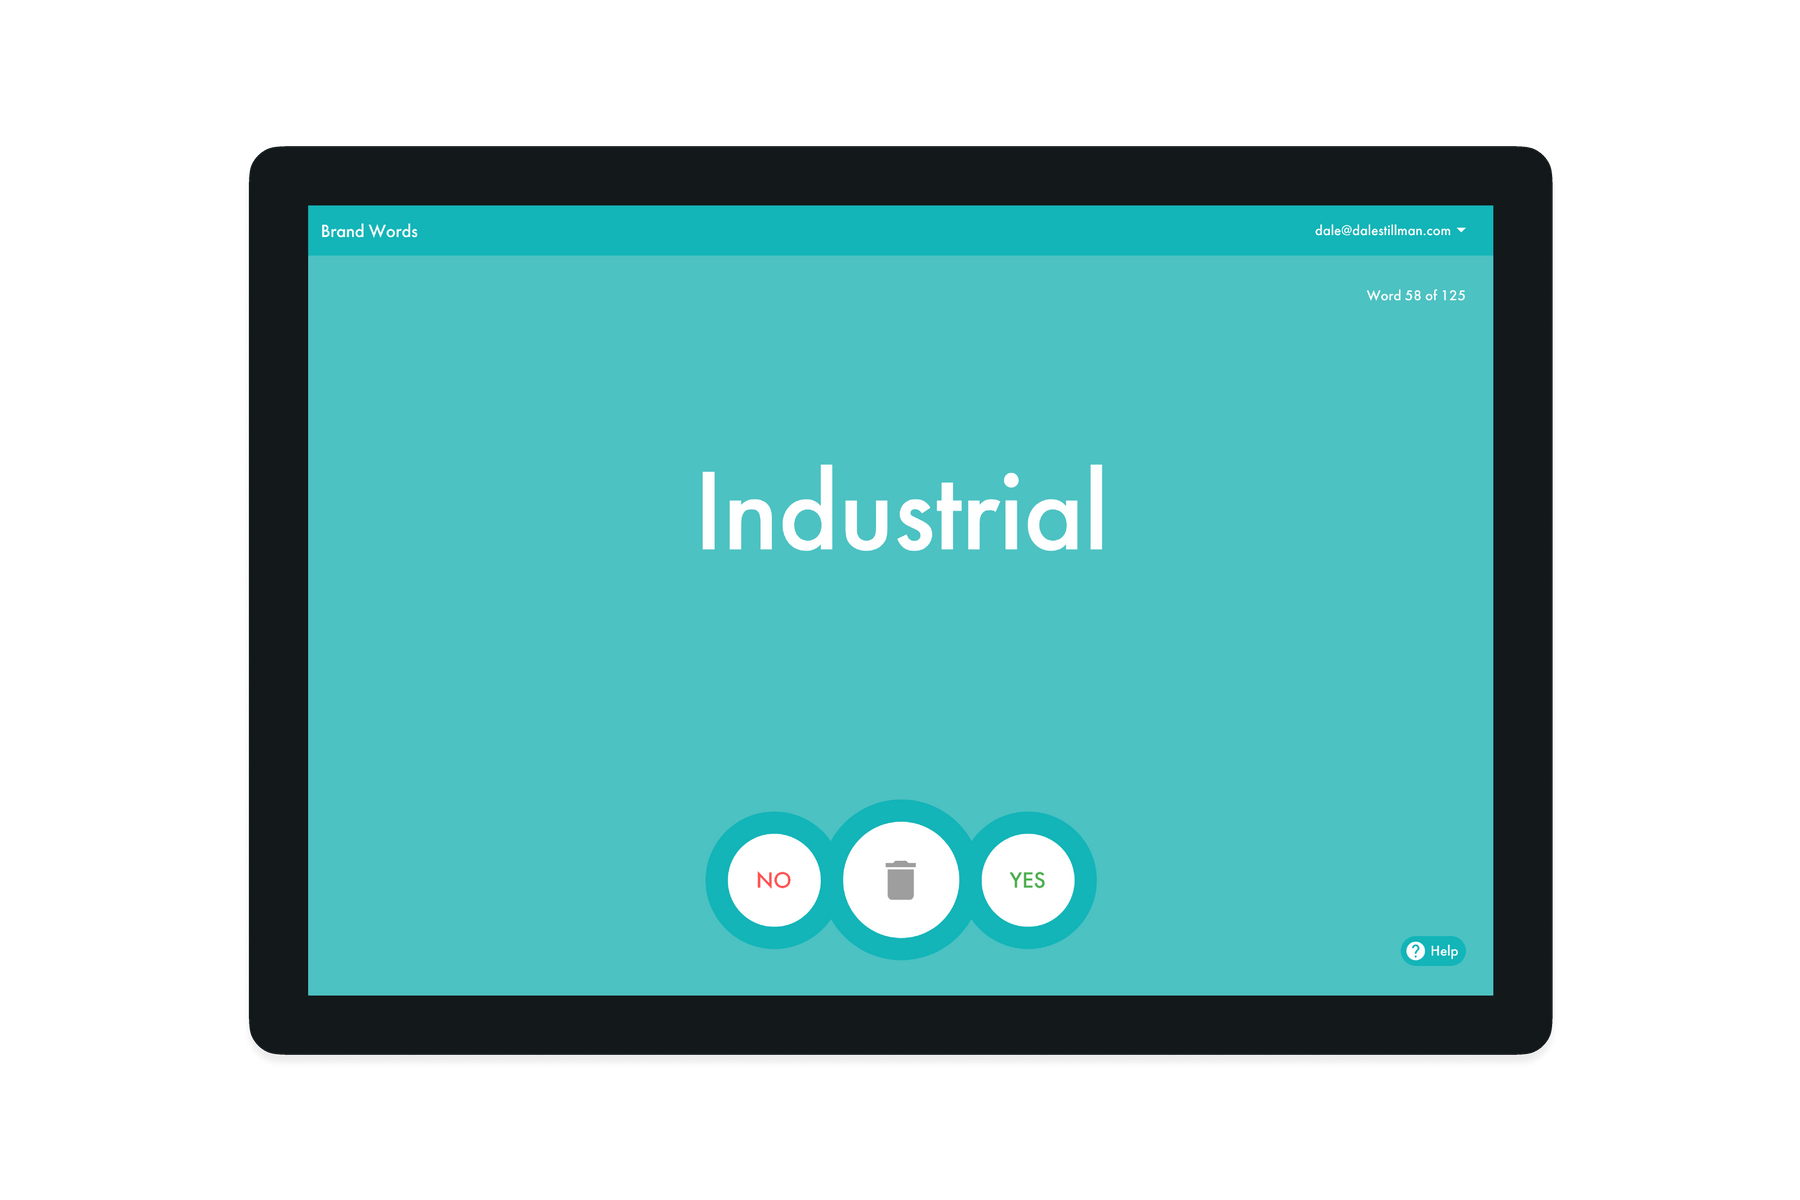 Tablet showing on the Brand Word Industrial